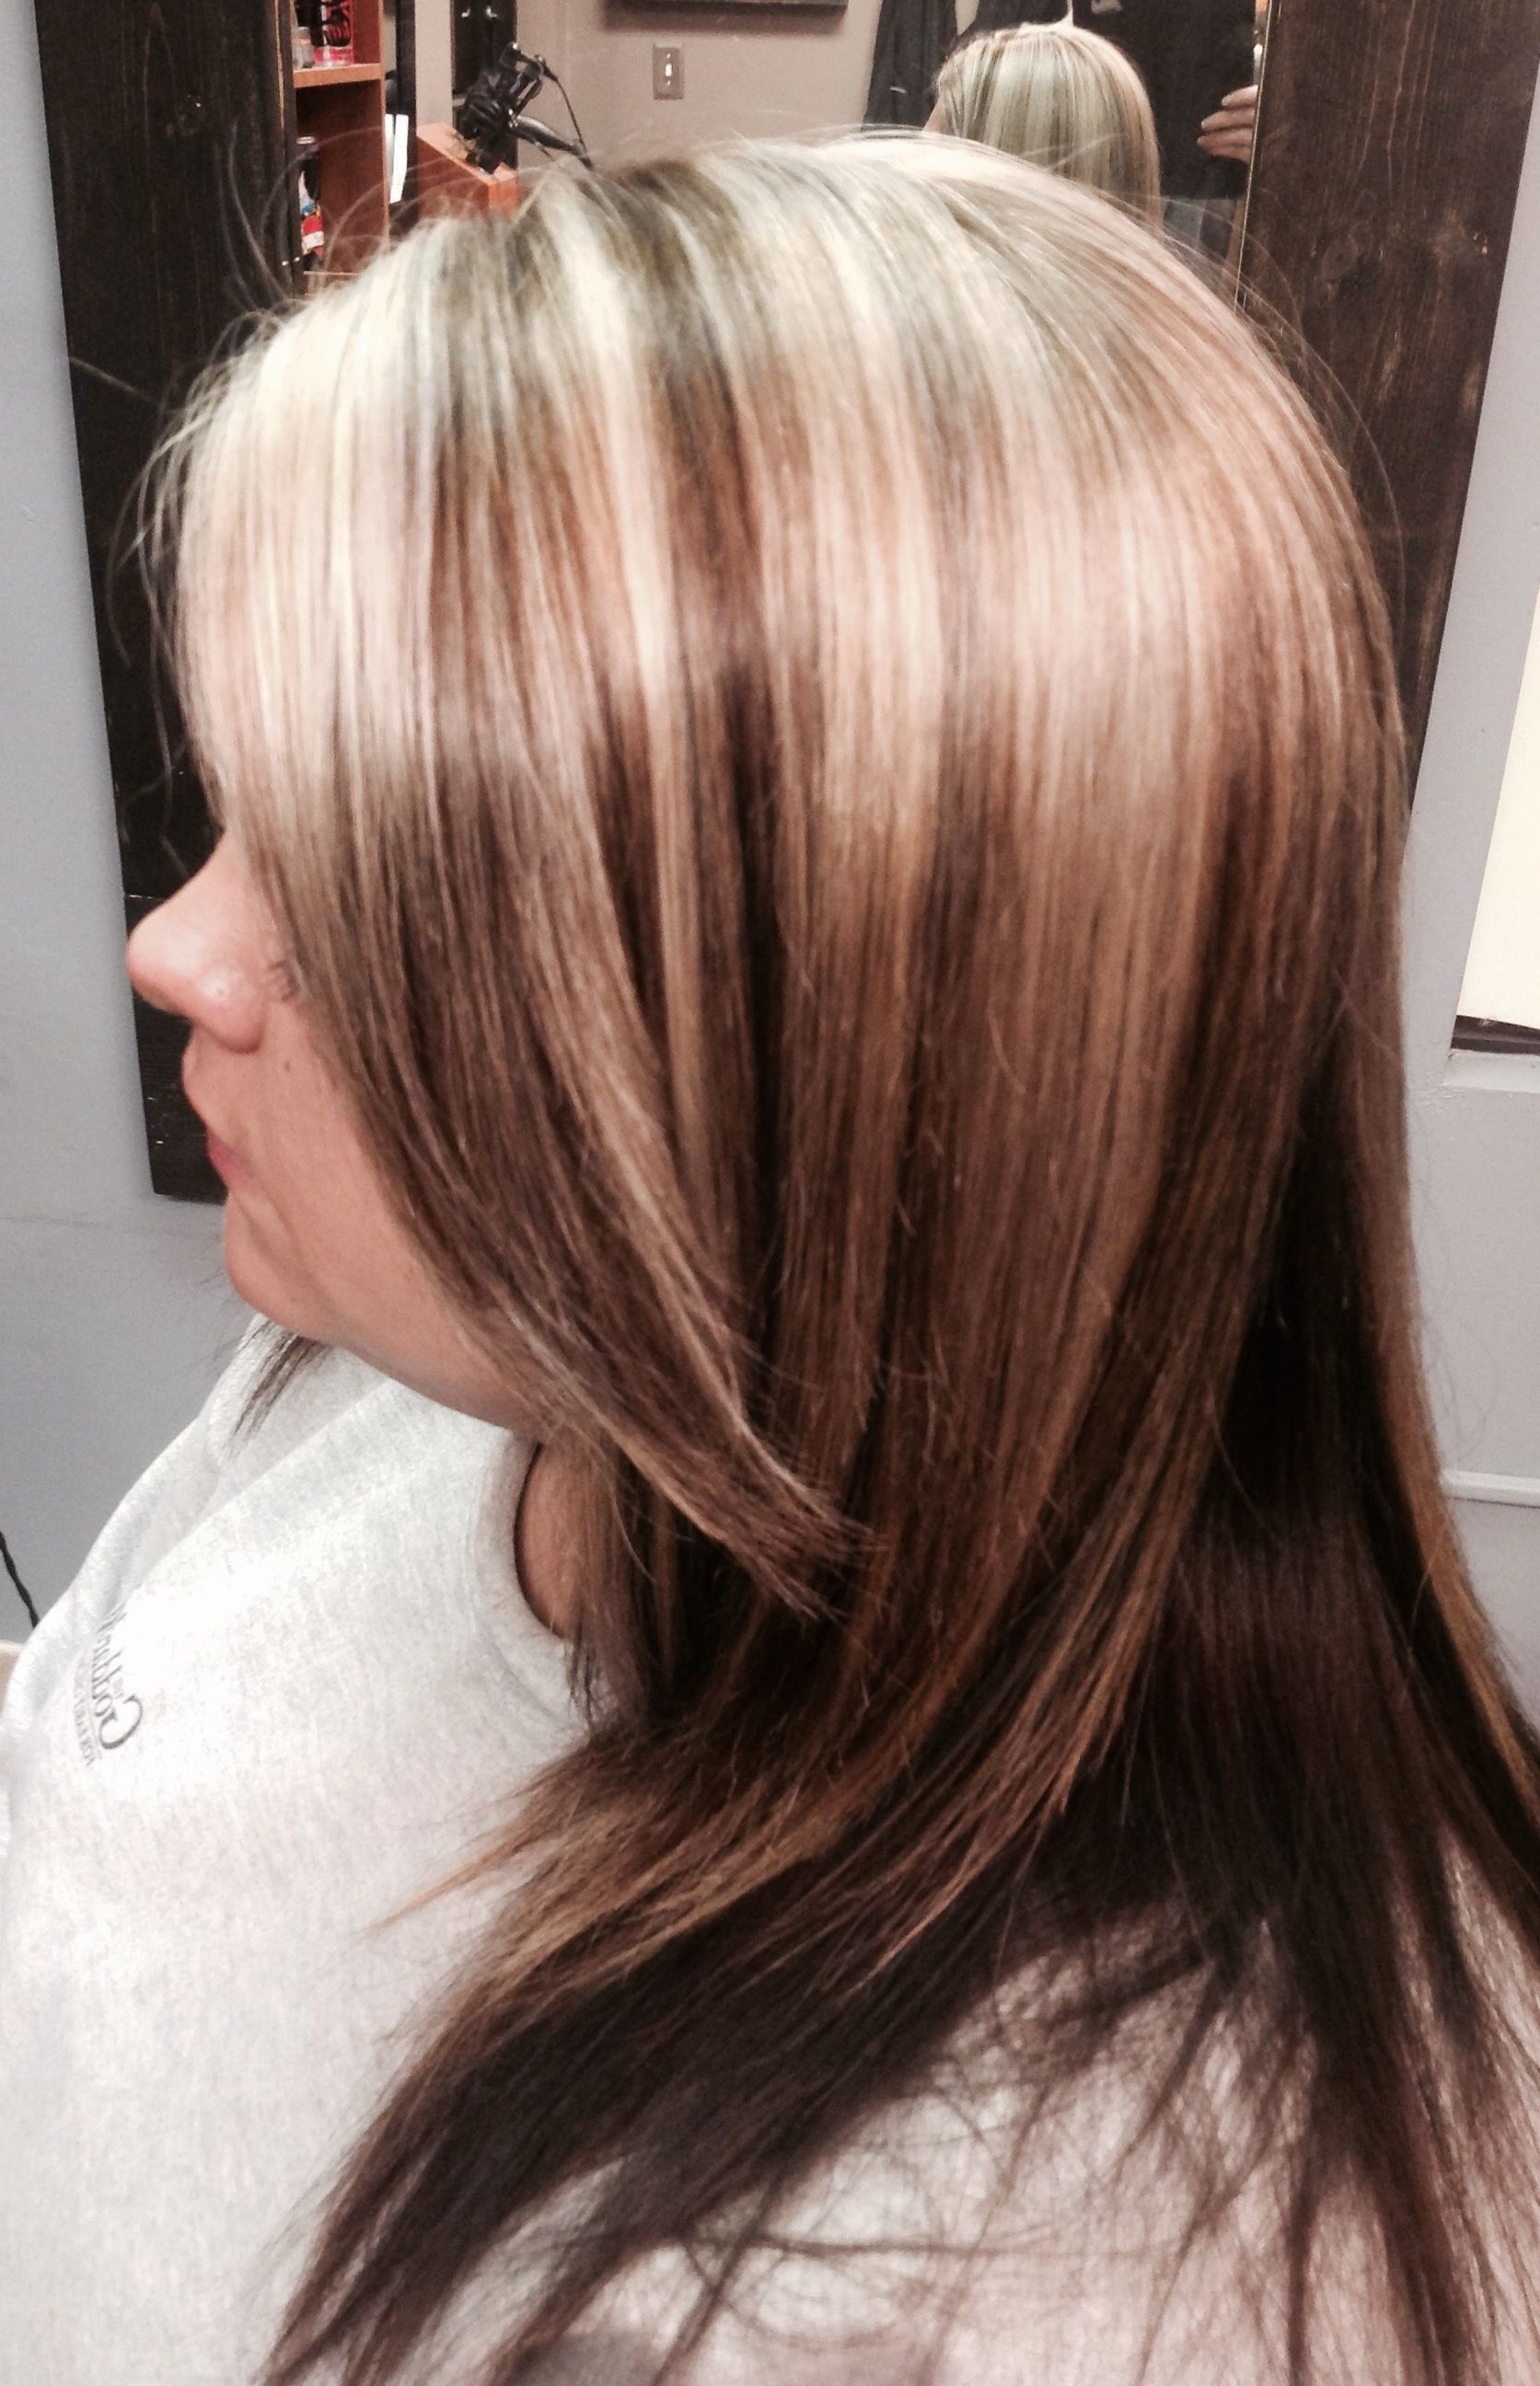 Fall Color Light Blonde With Dark Lowlights Highlights Long Hair In Most Popular Loosely Coiled Tortoiseshell Blonde Hairstyles (View 7 of 20)